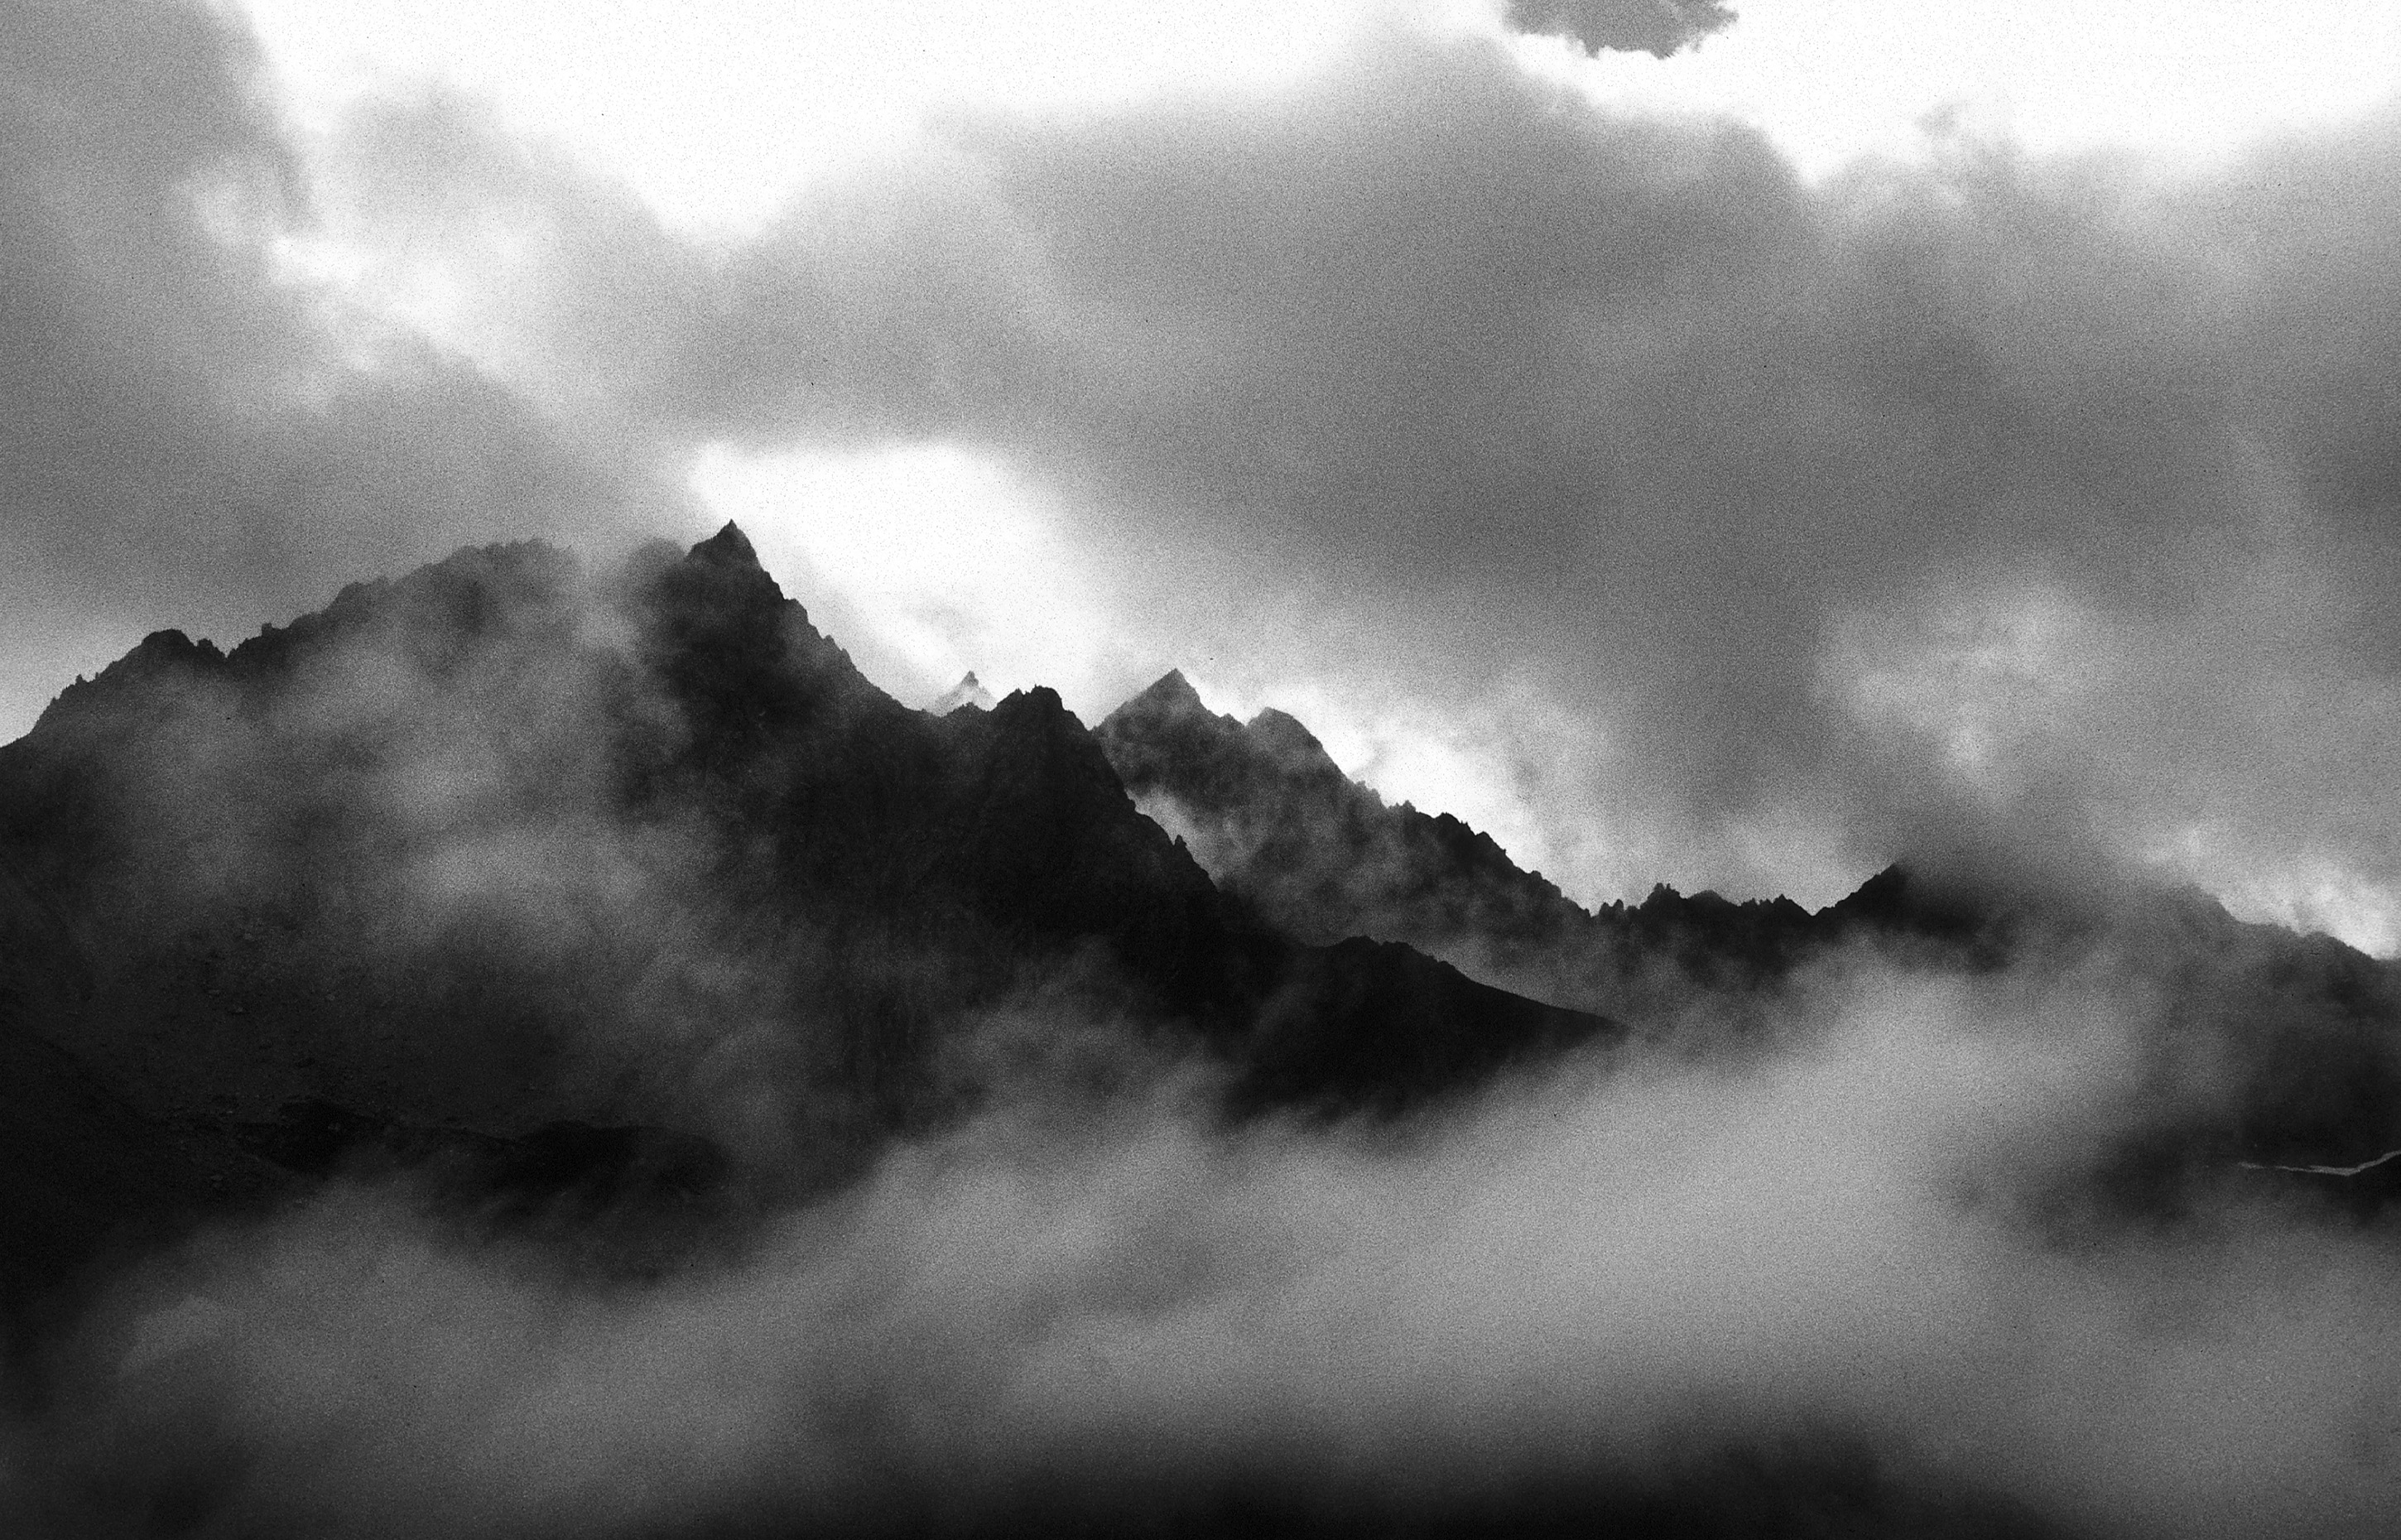 Dramatic black and white landscape